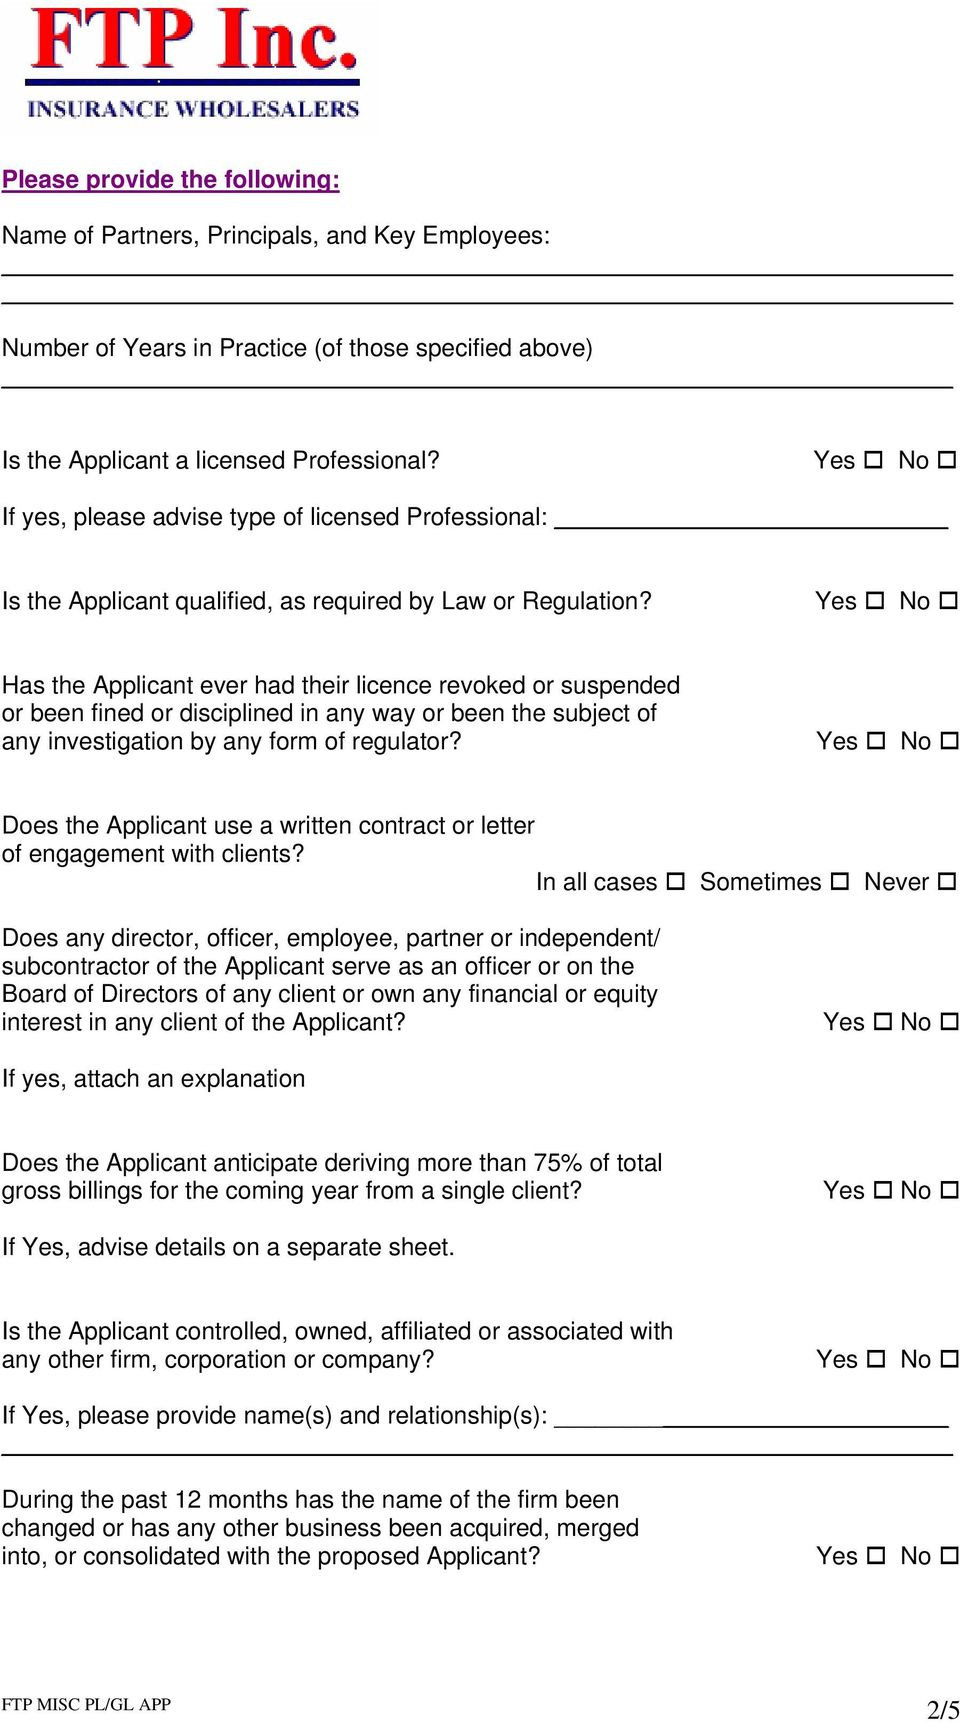 Has the Applicant ever had their licence revoked or suspended or been fined or disciplined in any way or been the subject of any investigation by any form of regulator?